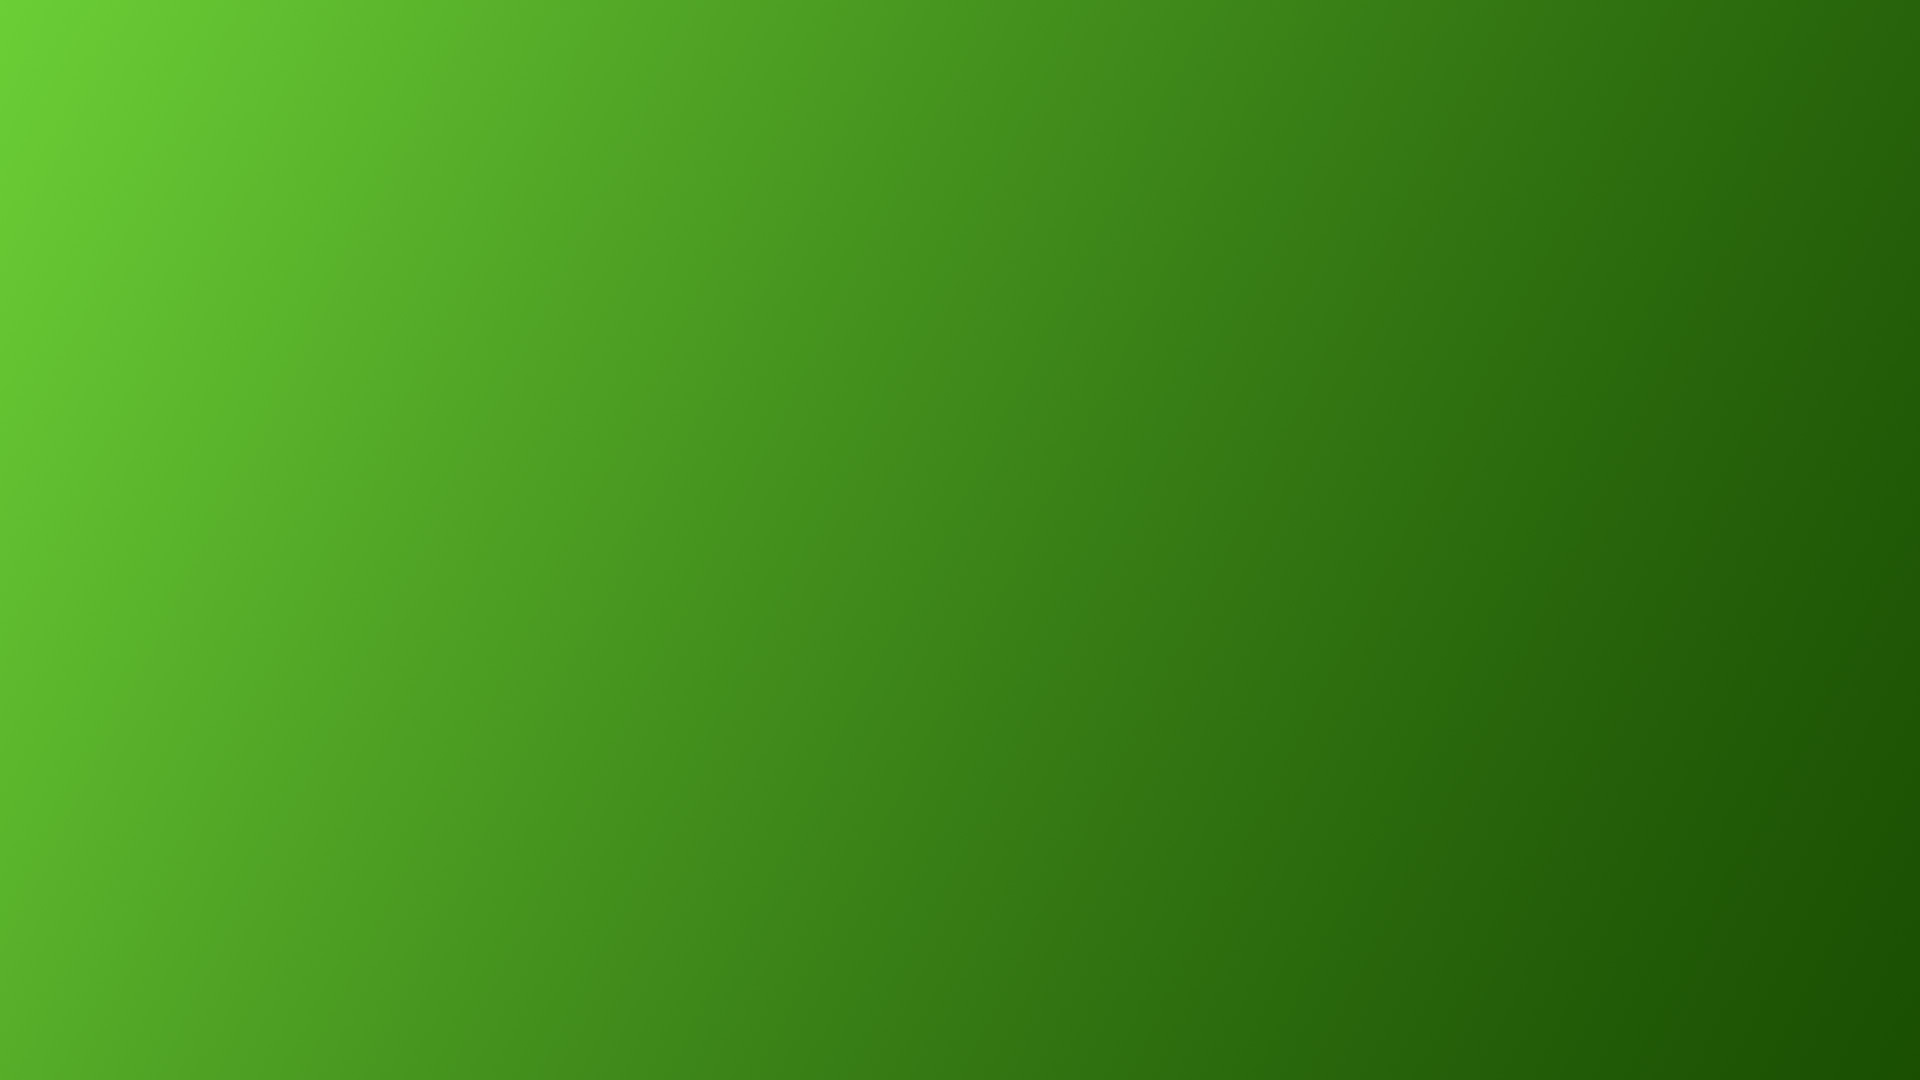 green-Presentation-Gradient-Background